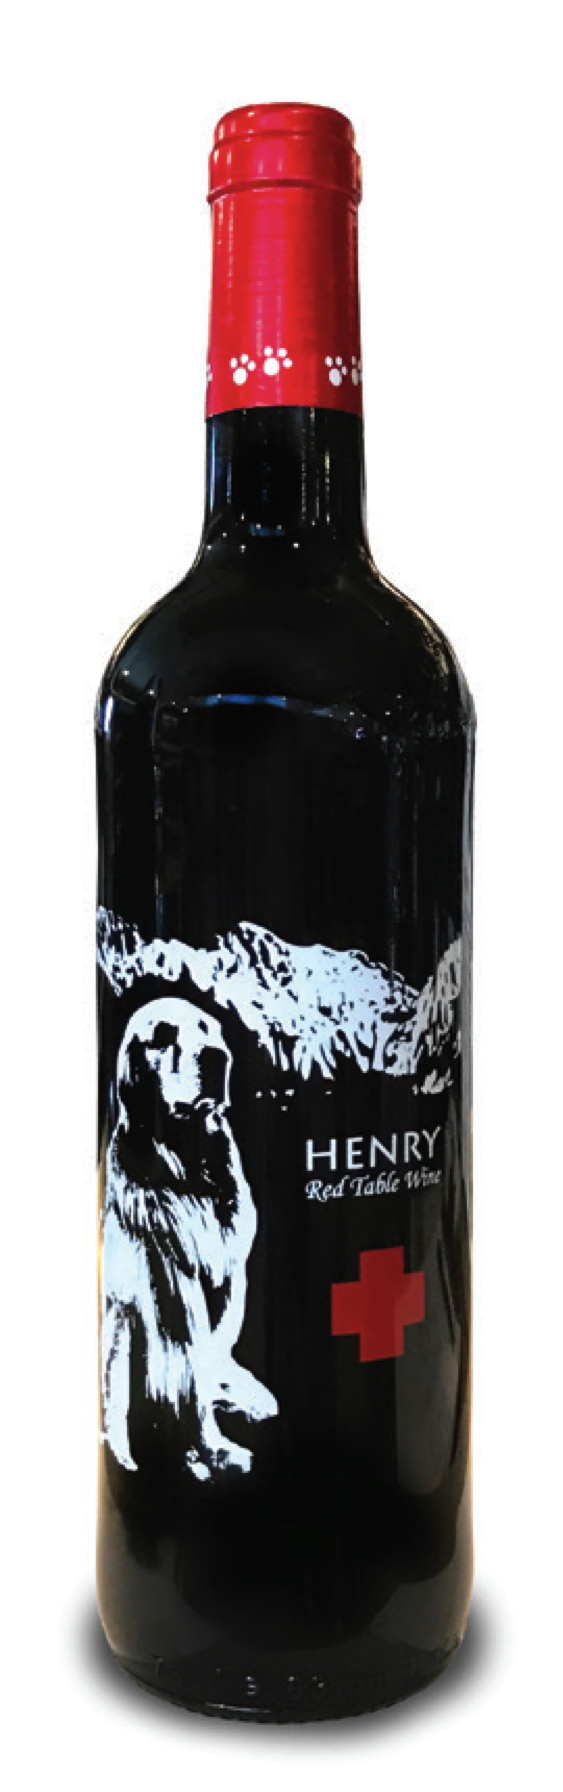 Henry Red Table Wine